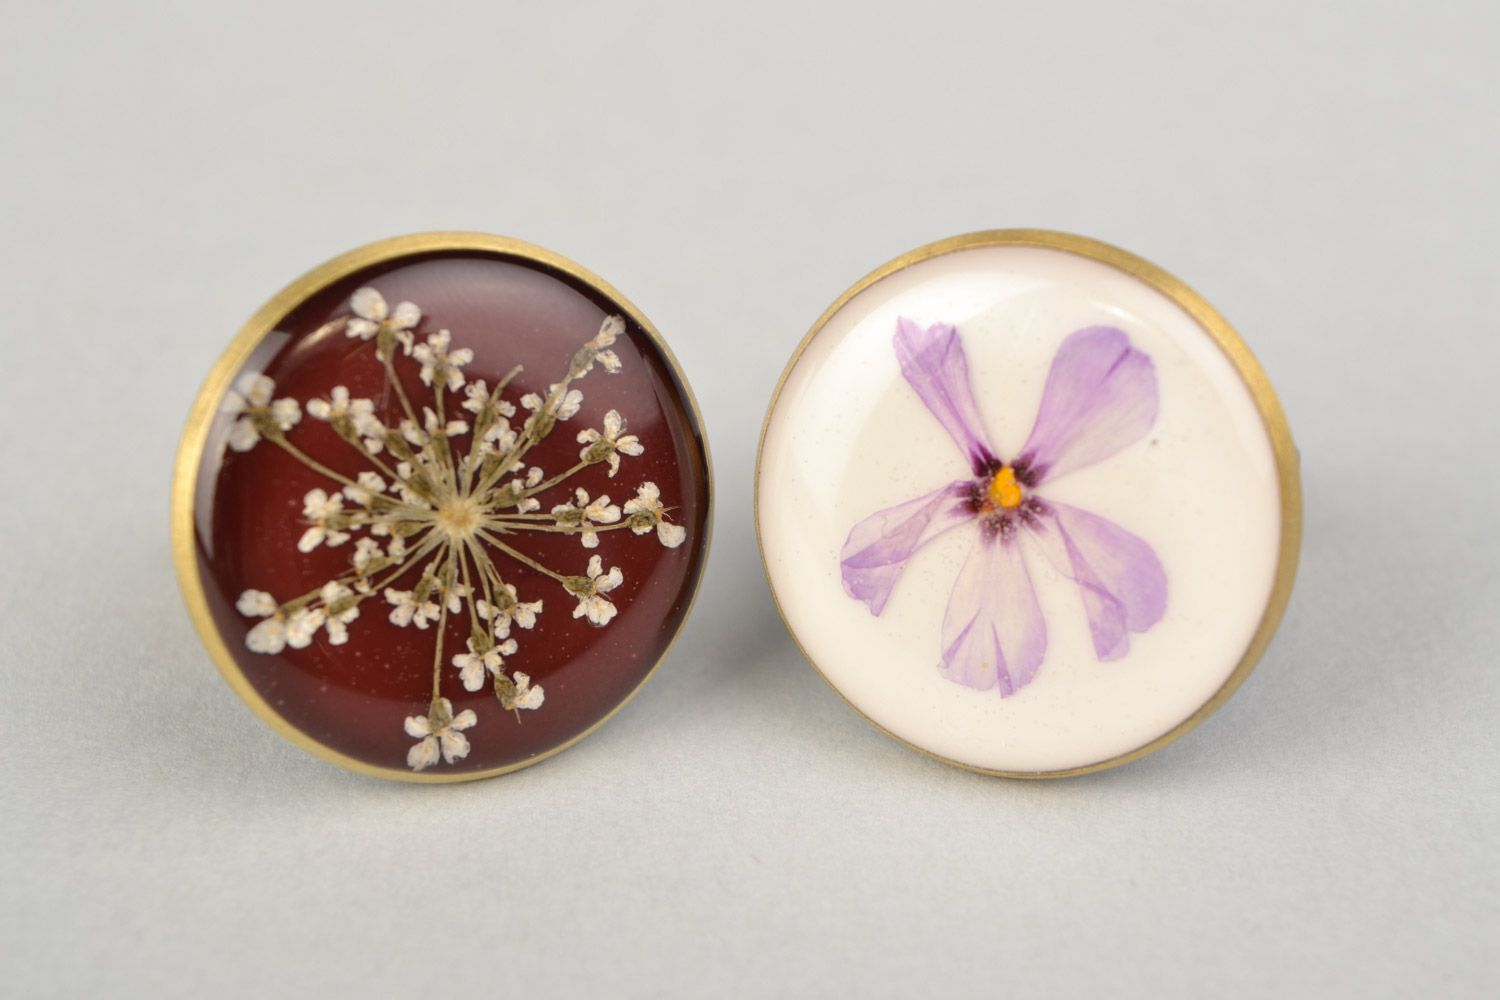 Two handmade flat round rings with natural flowers in epoxy resin for women photo 3